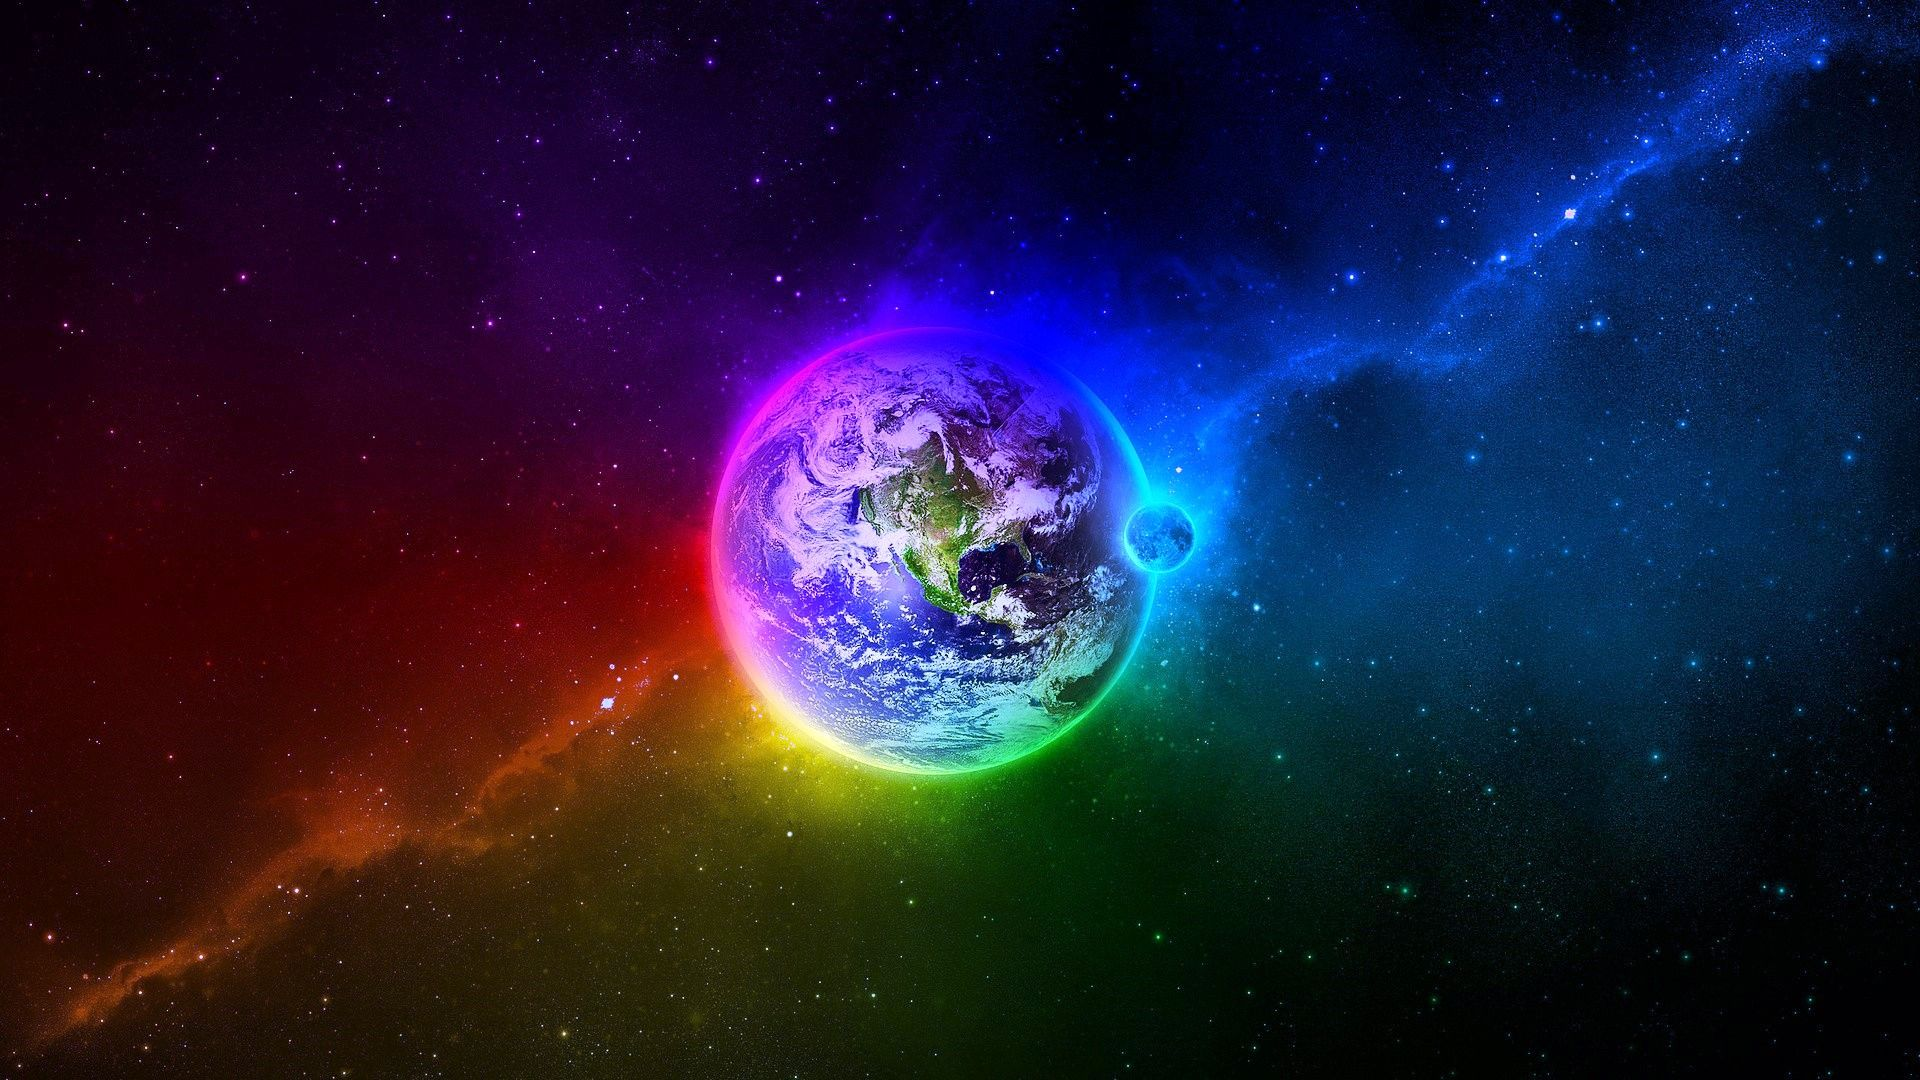 earth space wallpaper high quality resolution | demons | pinterest